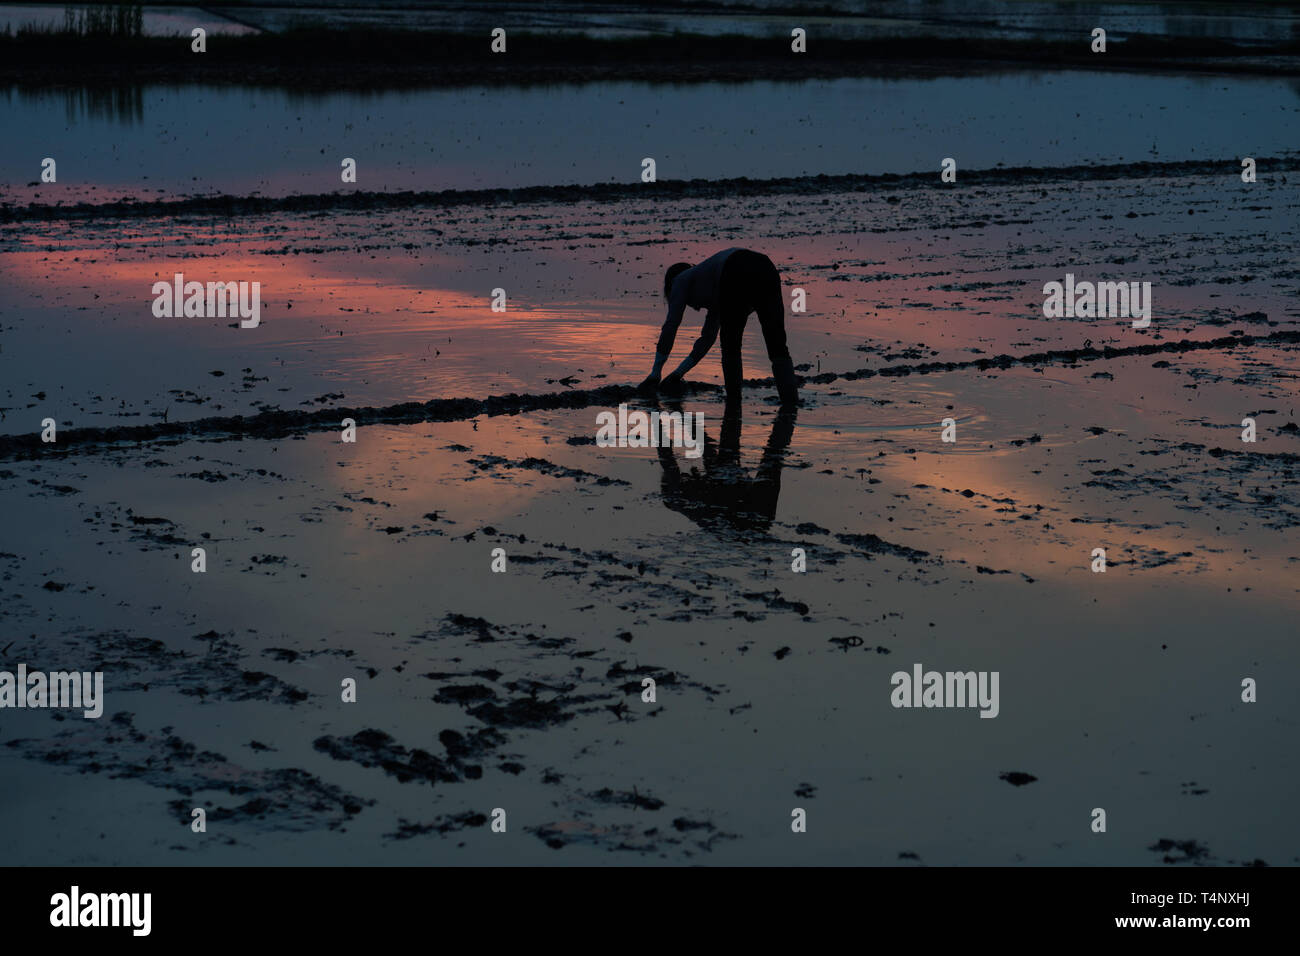 Cultivation field with Asian woman working at late evening. Concept of poor working condition and difficult living in developing countries Stock Photo